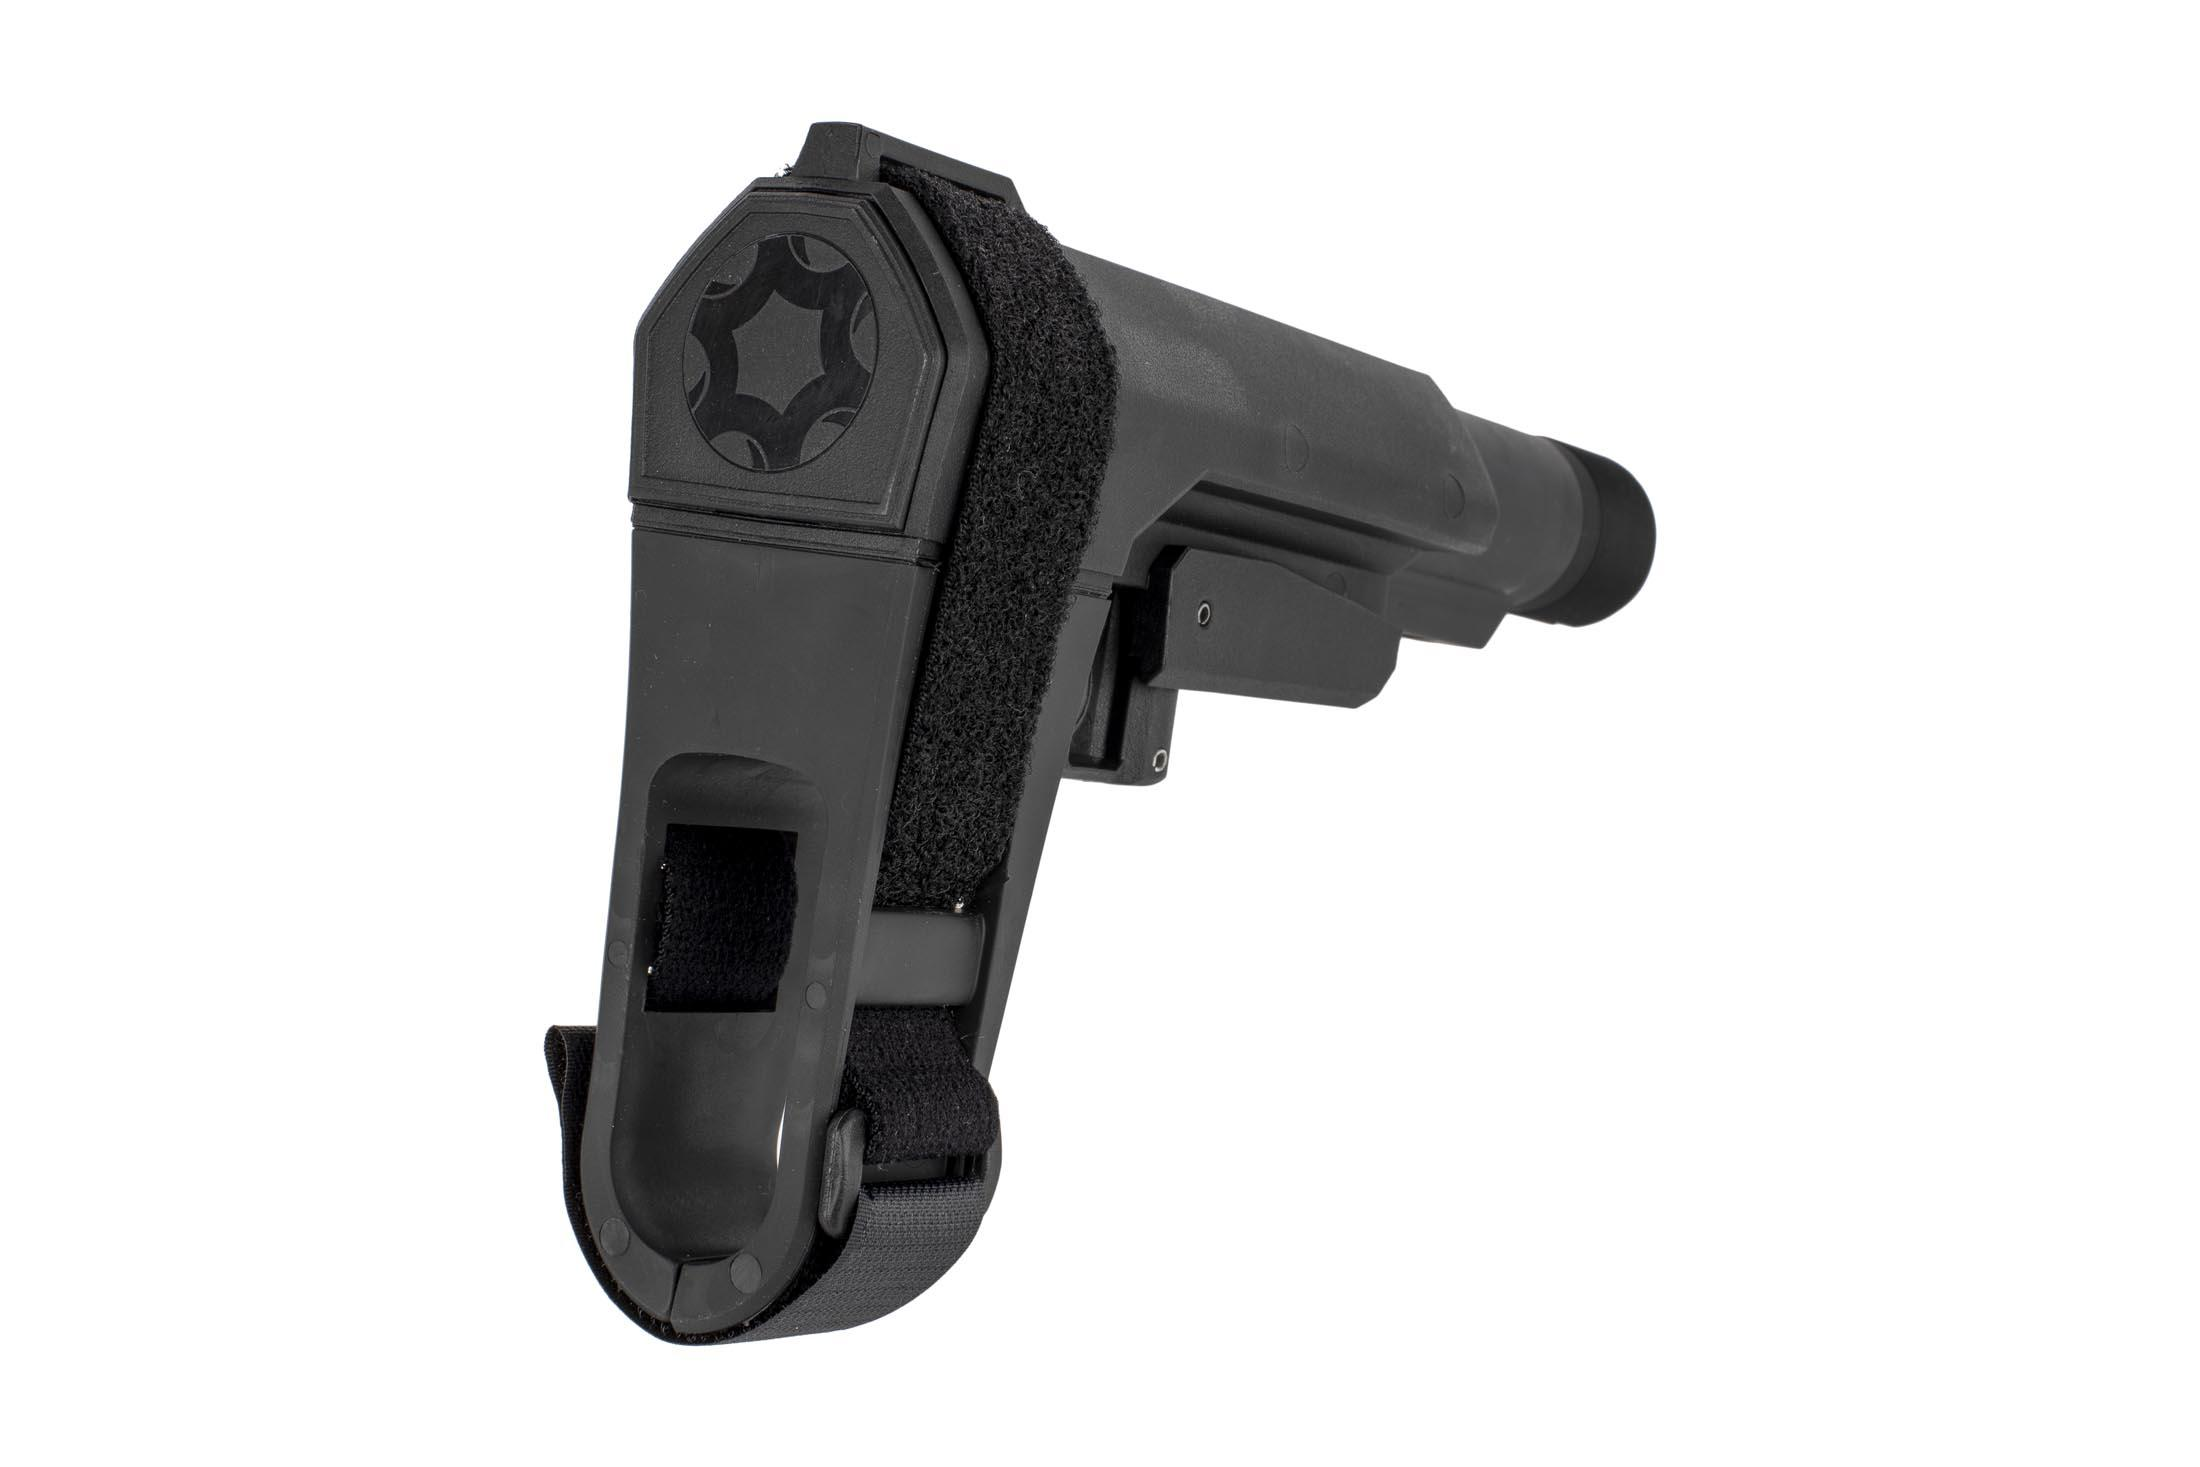 The CMMG RipBrace AR-15 pistol arm brace features an adjustable velcro strap and flexible rubber